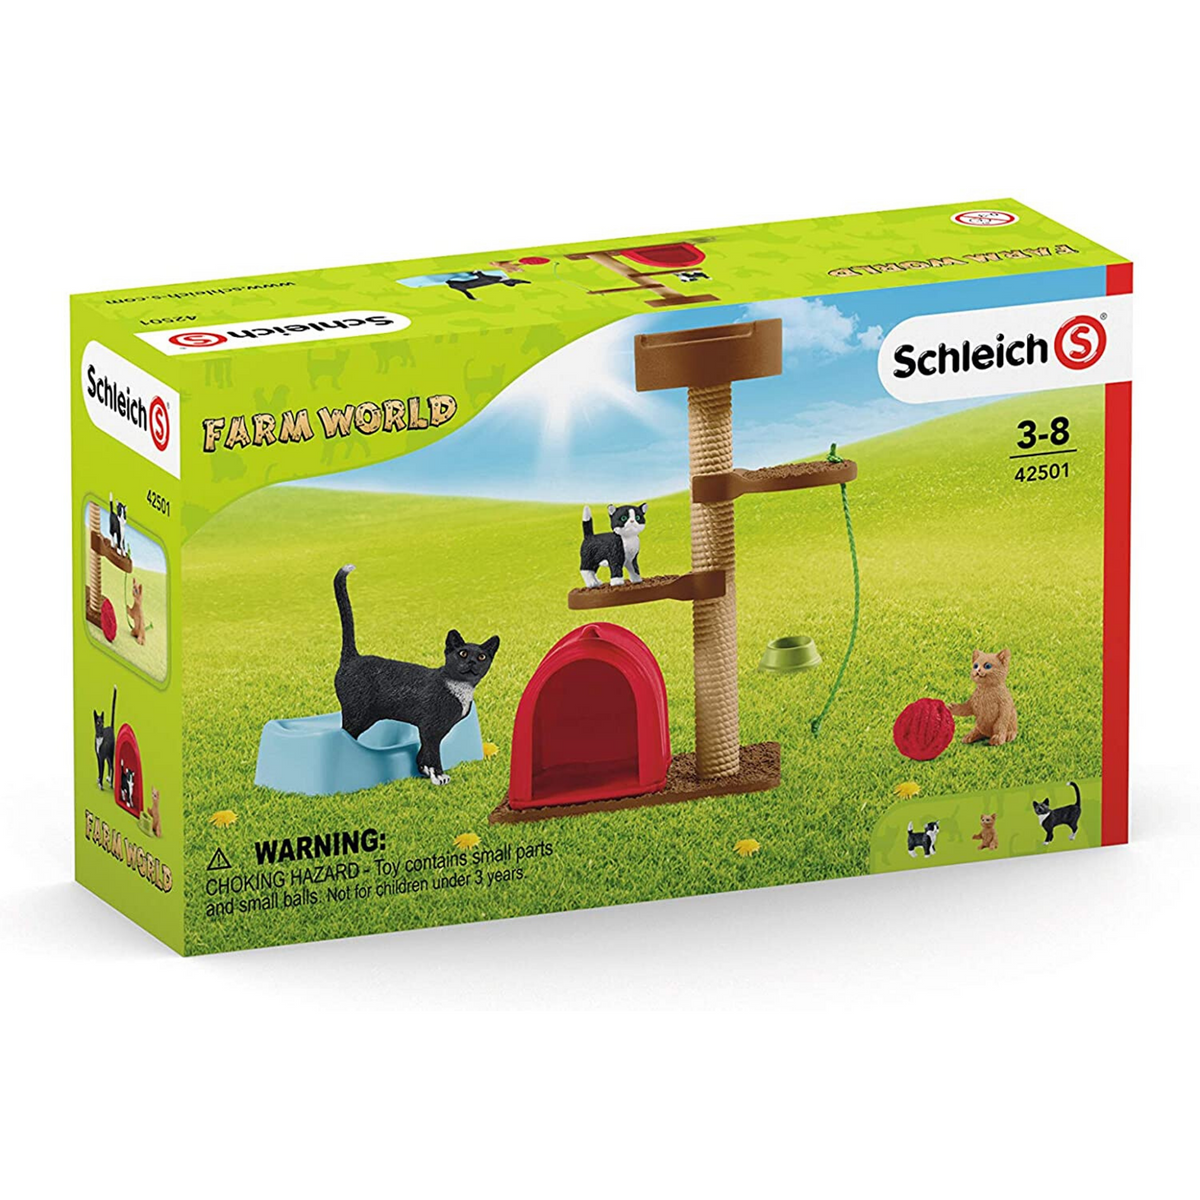 Schleich Farmworld Playtime for Cute Cats